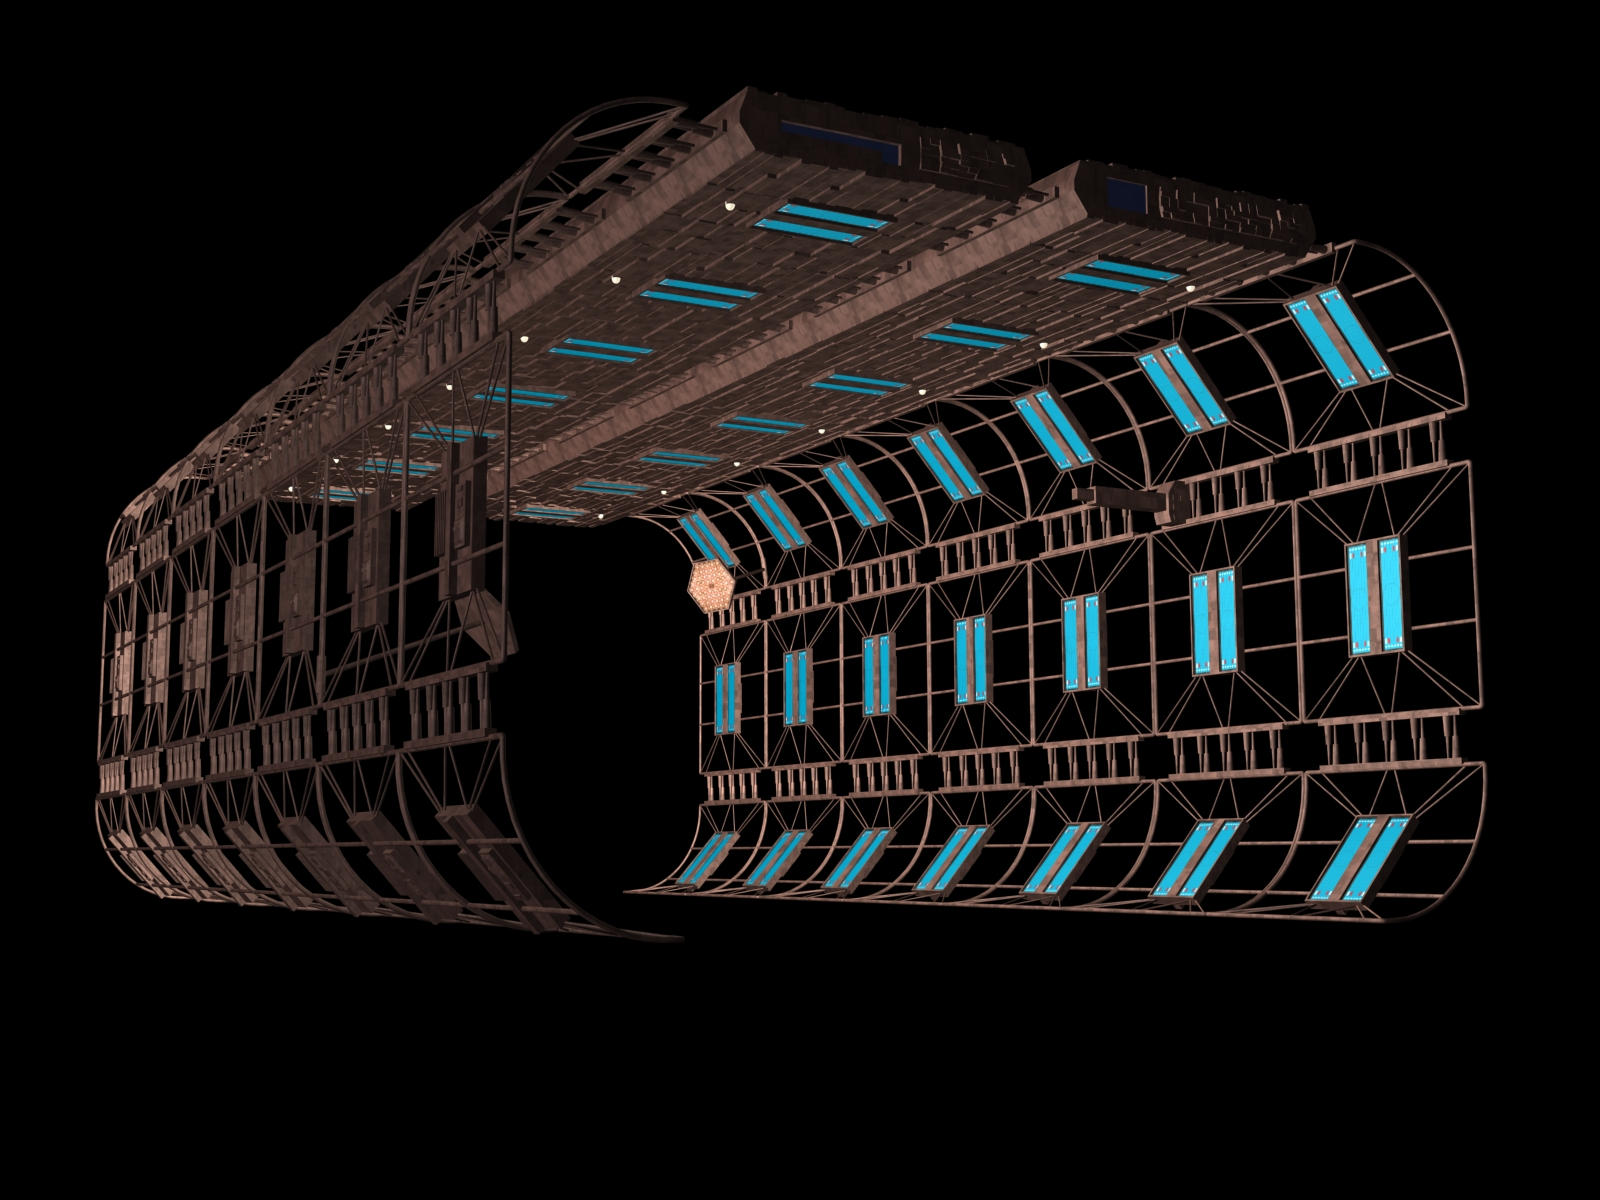 TMP drydock by metlesitsfleetyards